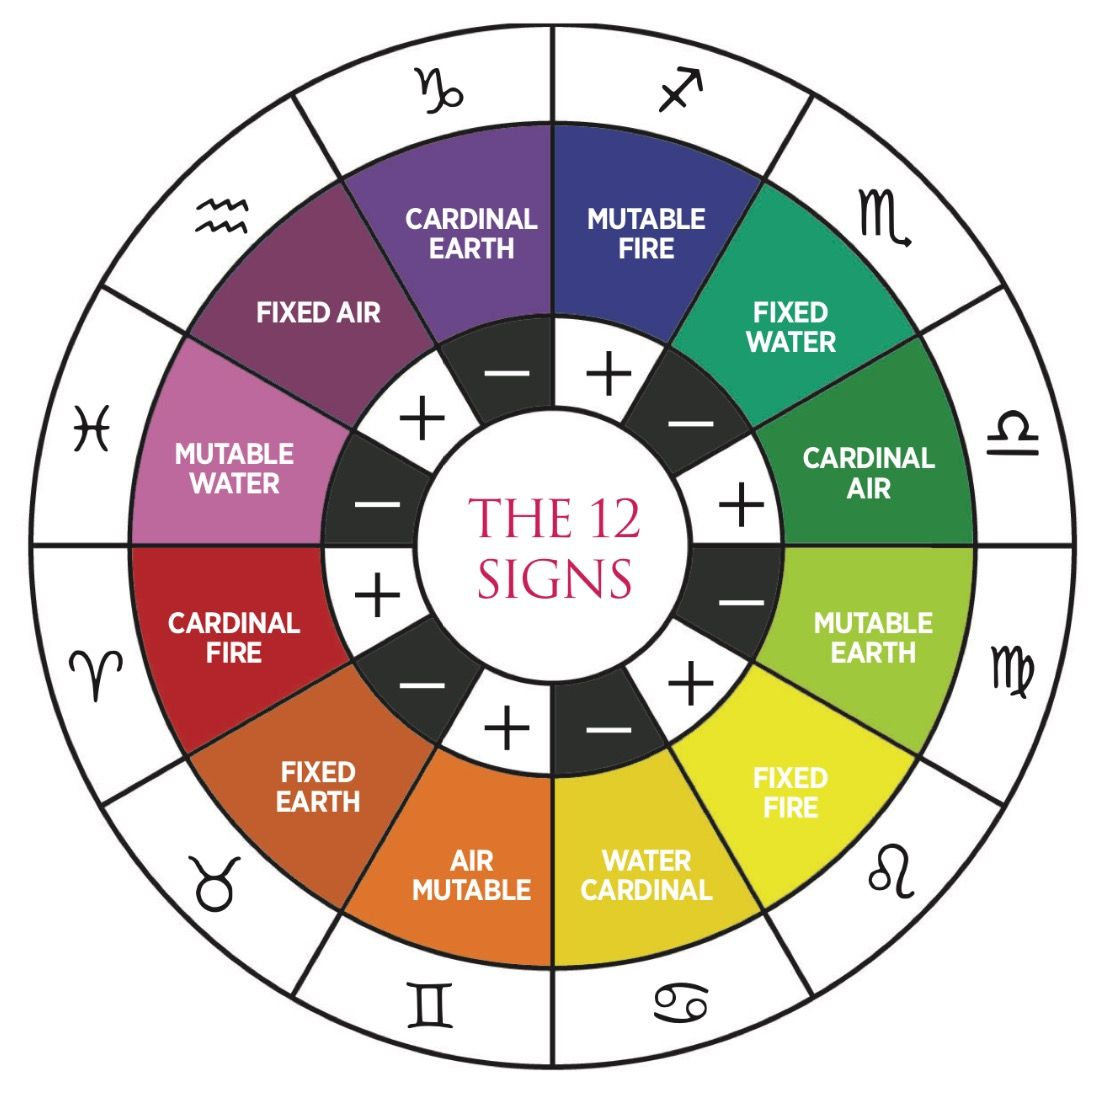 Pin by Ariana on Astrology | Astrology, Numerology, Pie chart